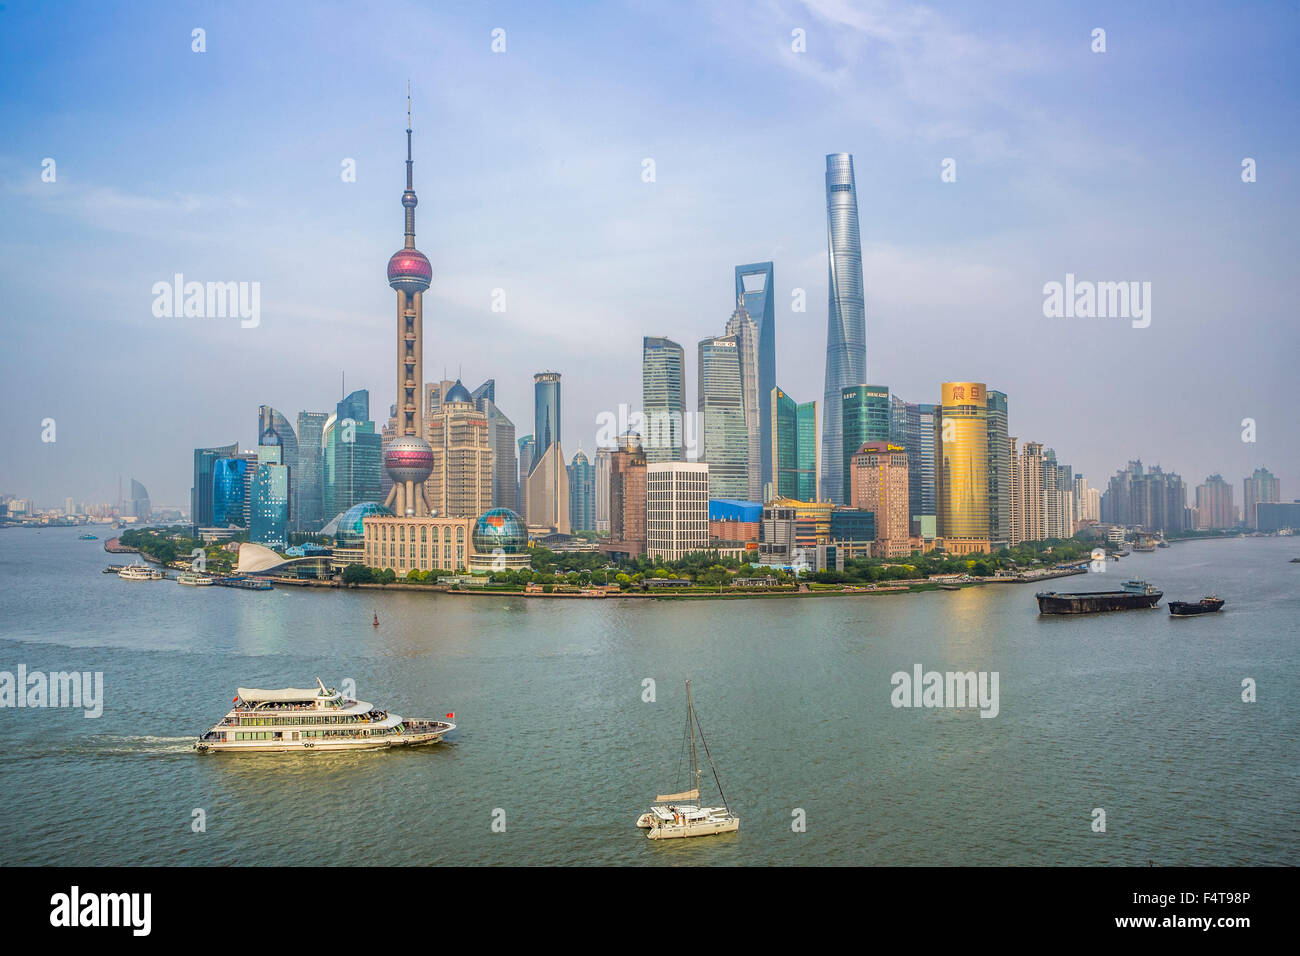 La Chine, la ville de Shanghai, Pudong Skyline Photo Stock